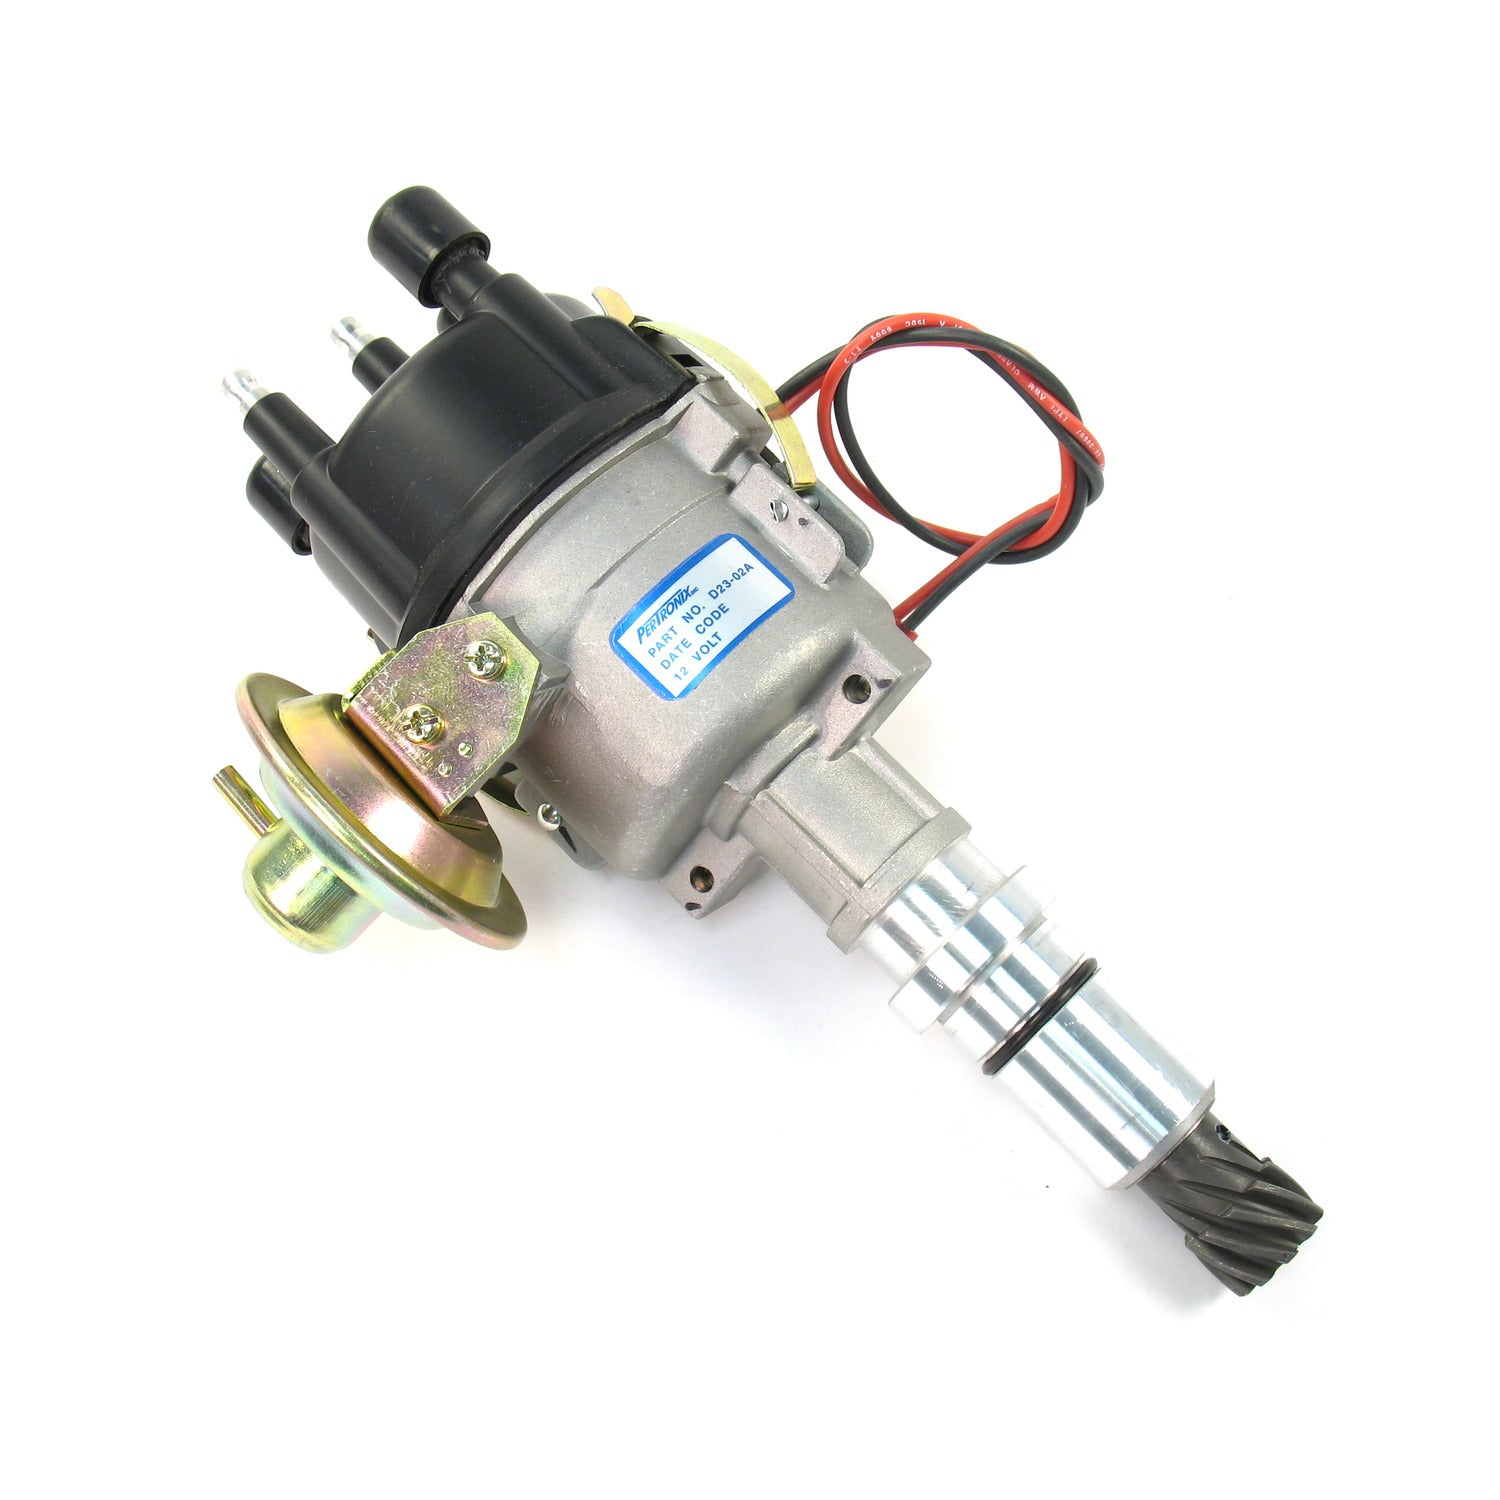 PerTronix D23-02A Distributor Industrial Continental 2 cyl